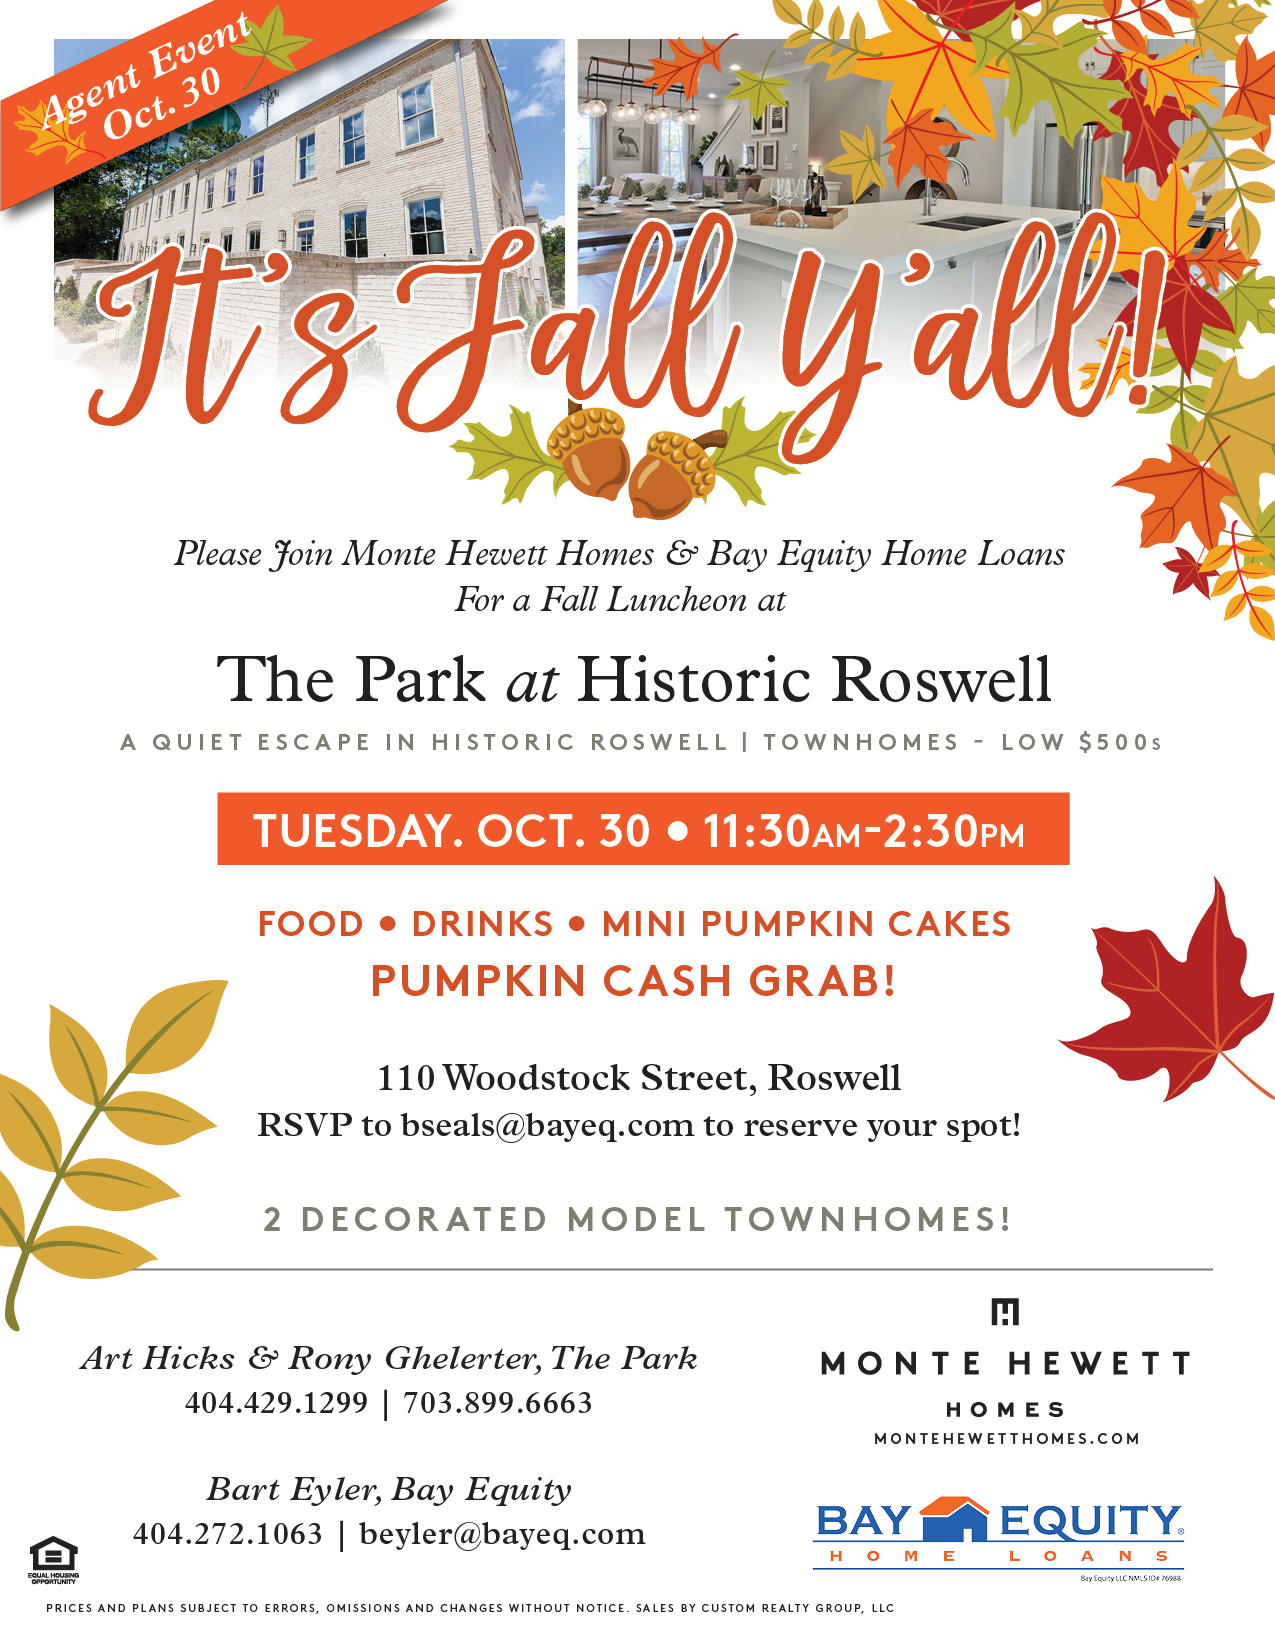 Monte Hewett Homes Hosting New Roswell Townhome Community Event